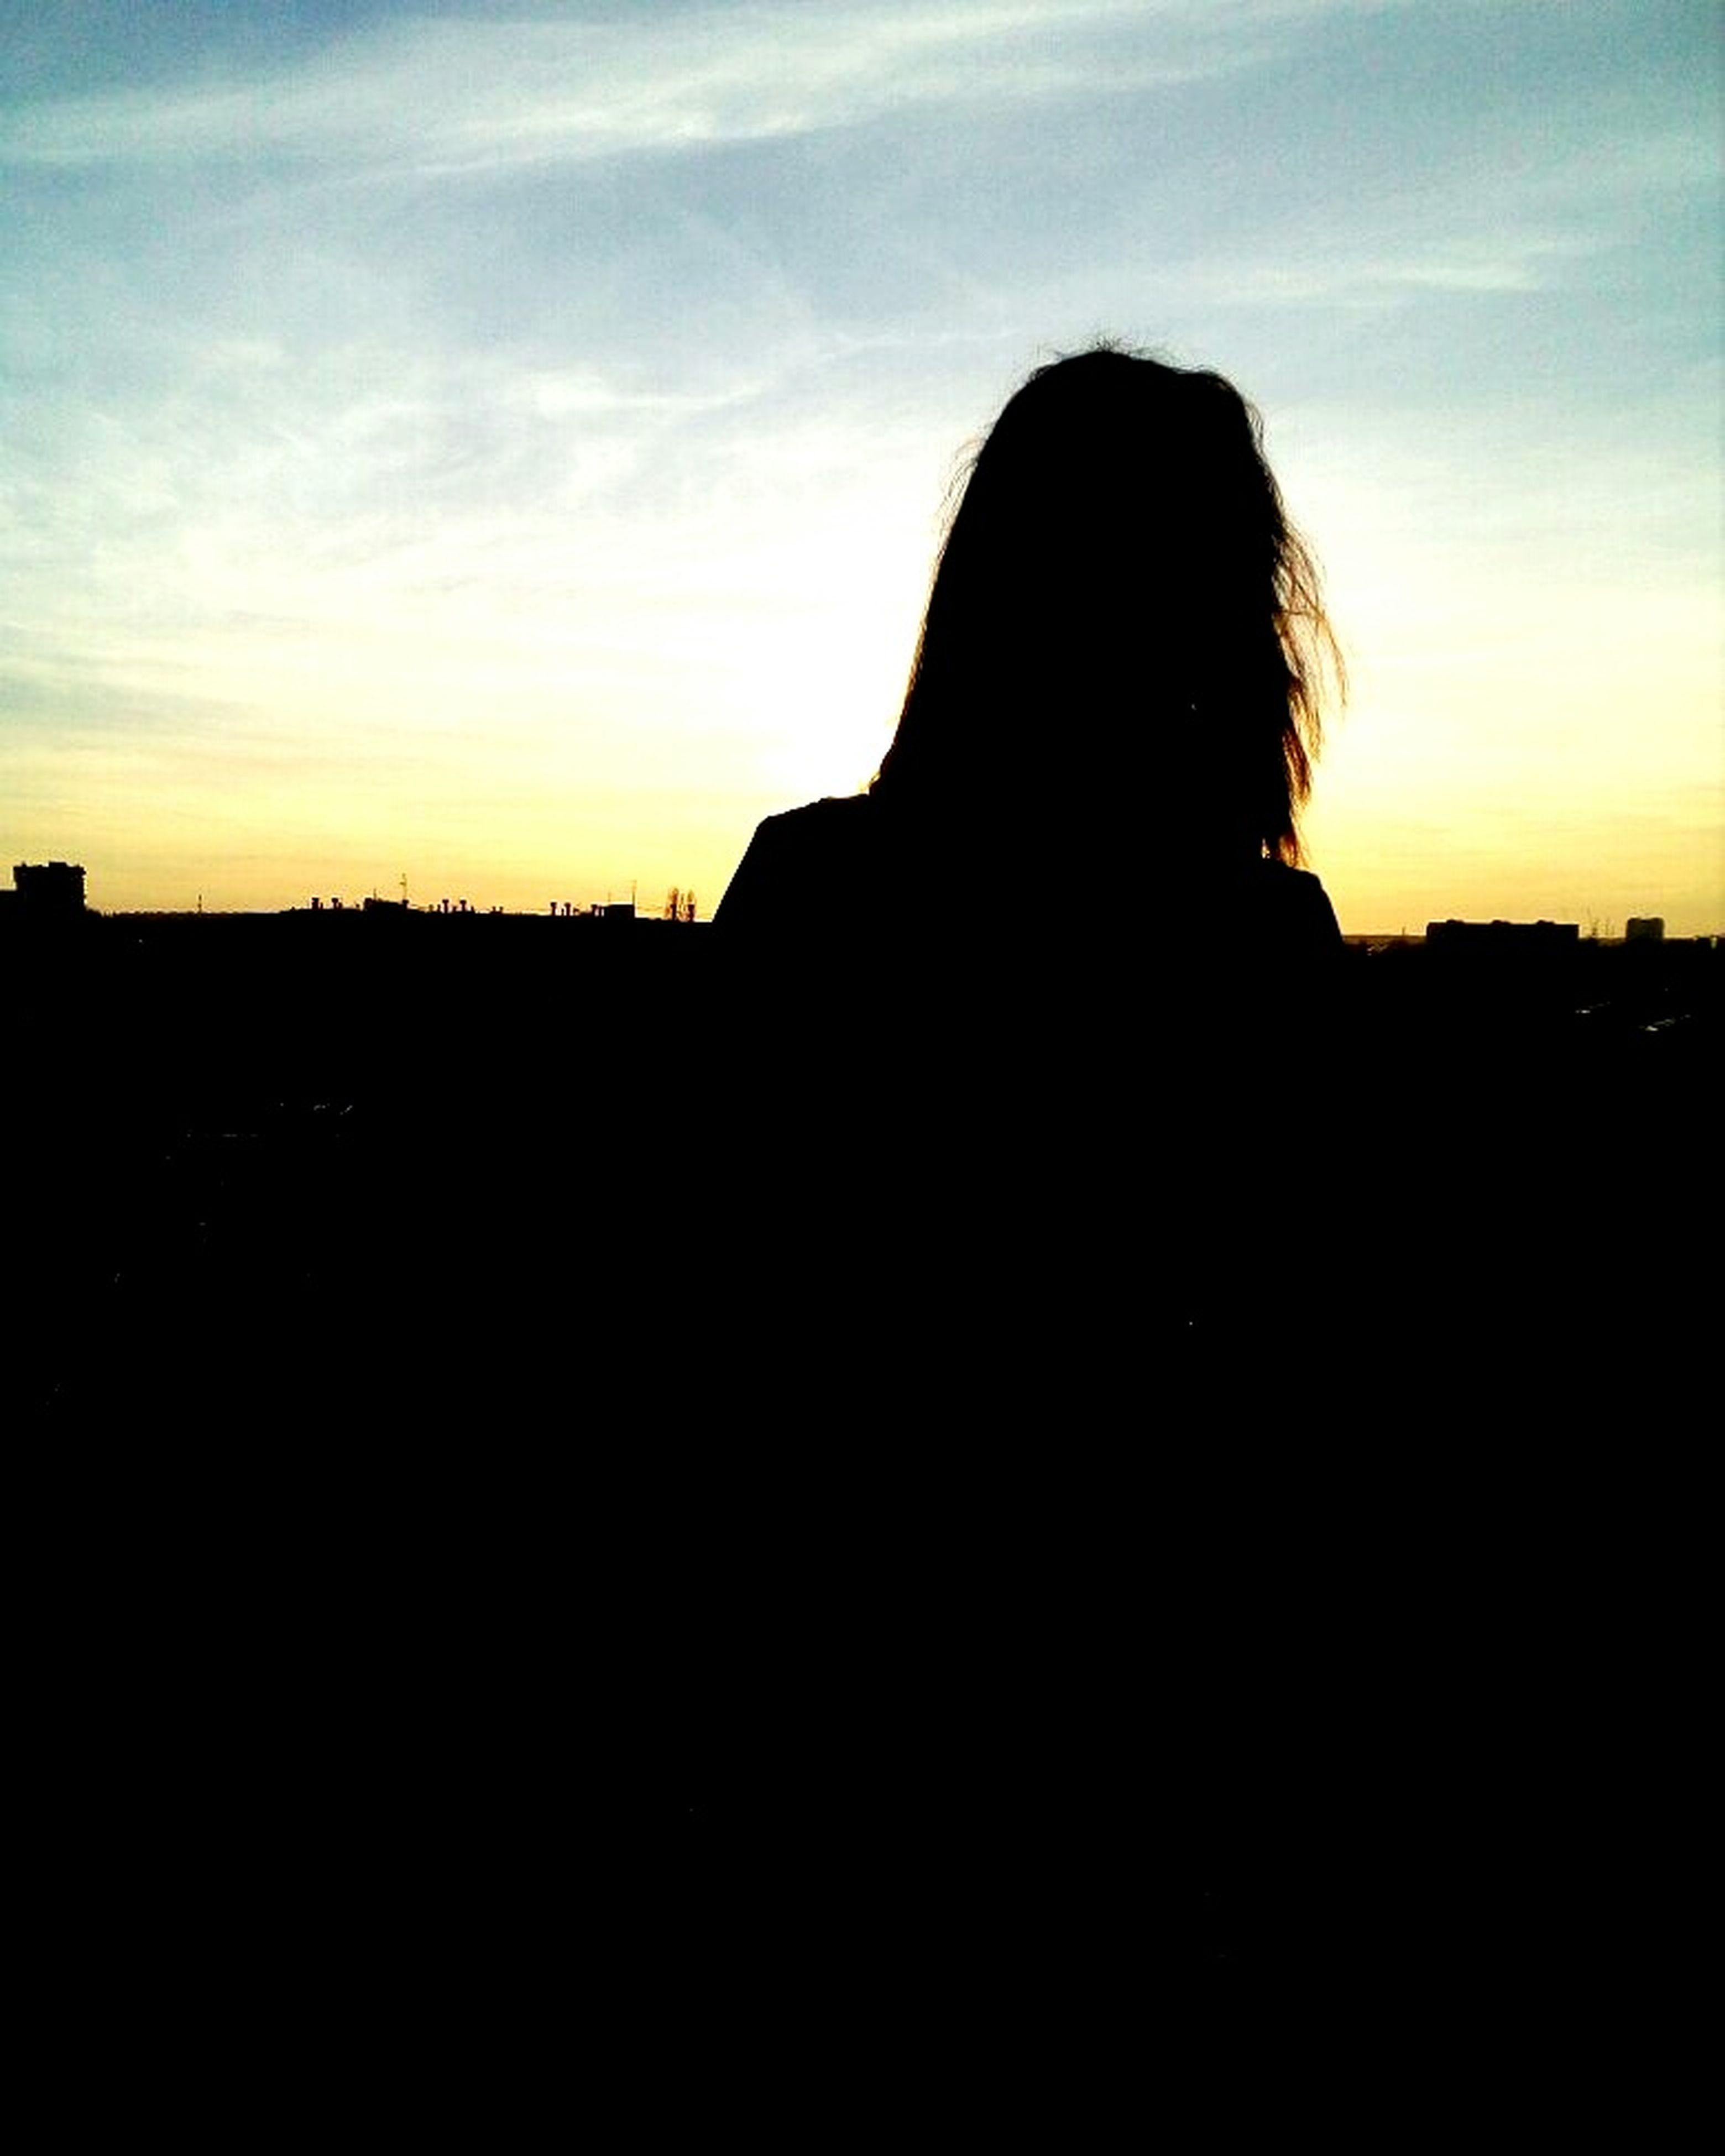 silhouette, real people, one person, sky, waist up, leisure activity, sunset, lifestyles, outdoors, nature, men, cloud - sky, scenics, day, adult, adults only, people